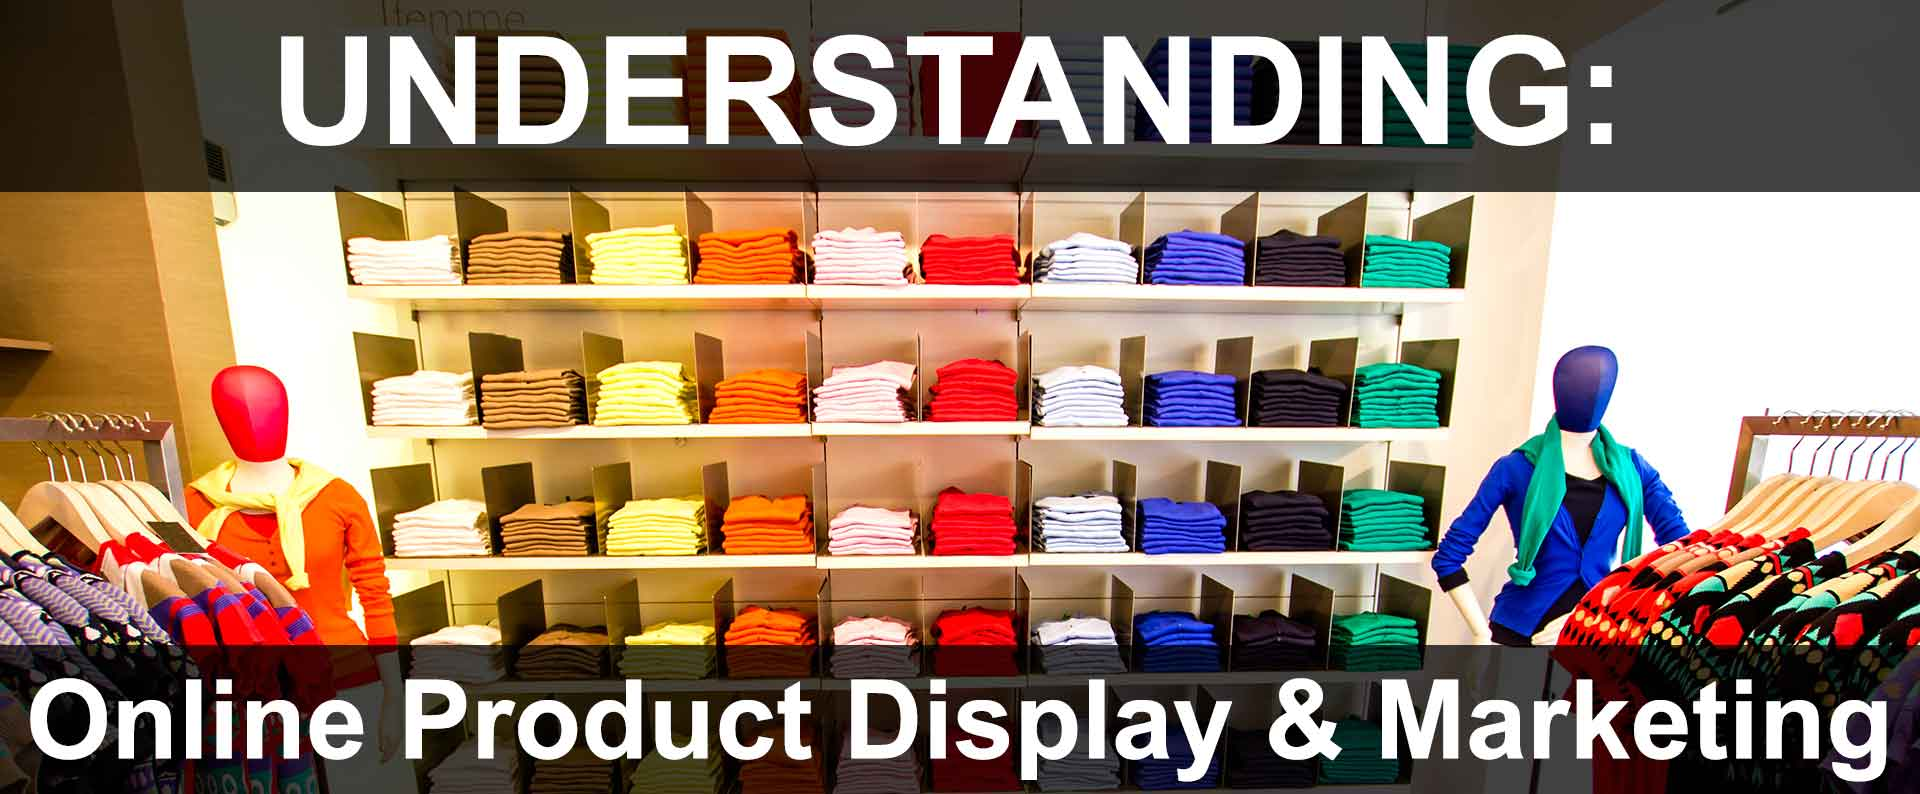 Website Content Must Be Merchandised Just Like Products In-Store